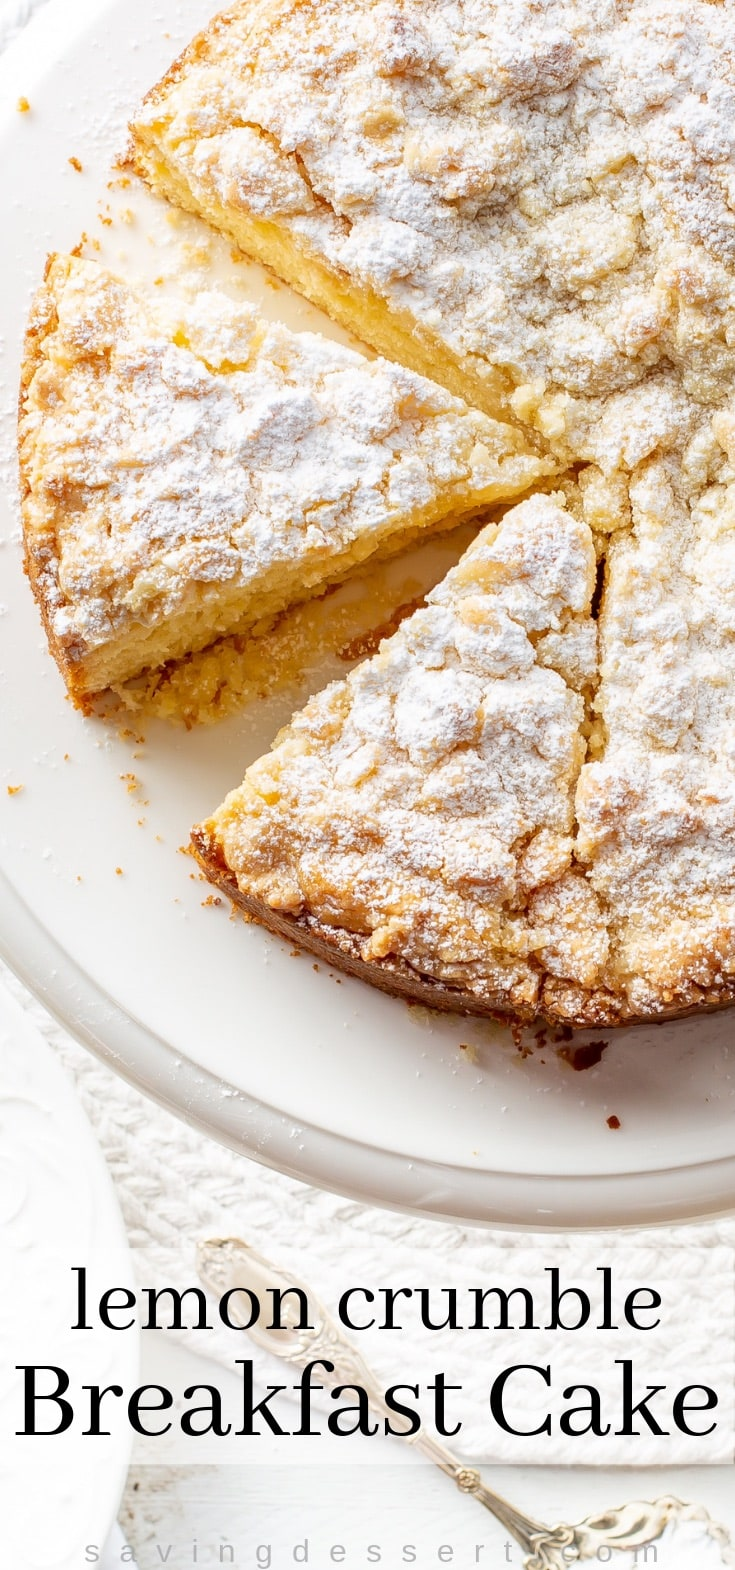 A cake plate with a sliced lemon crumble cake dusted with powdered sugar